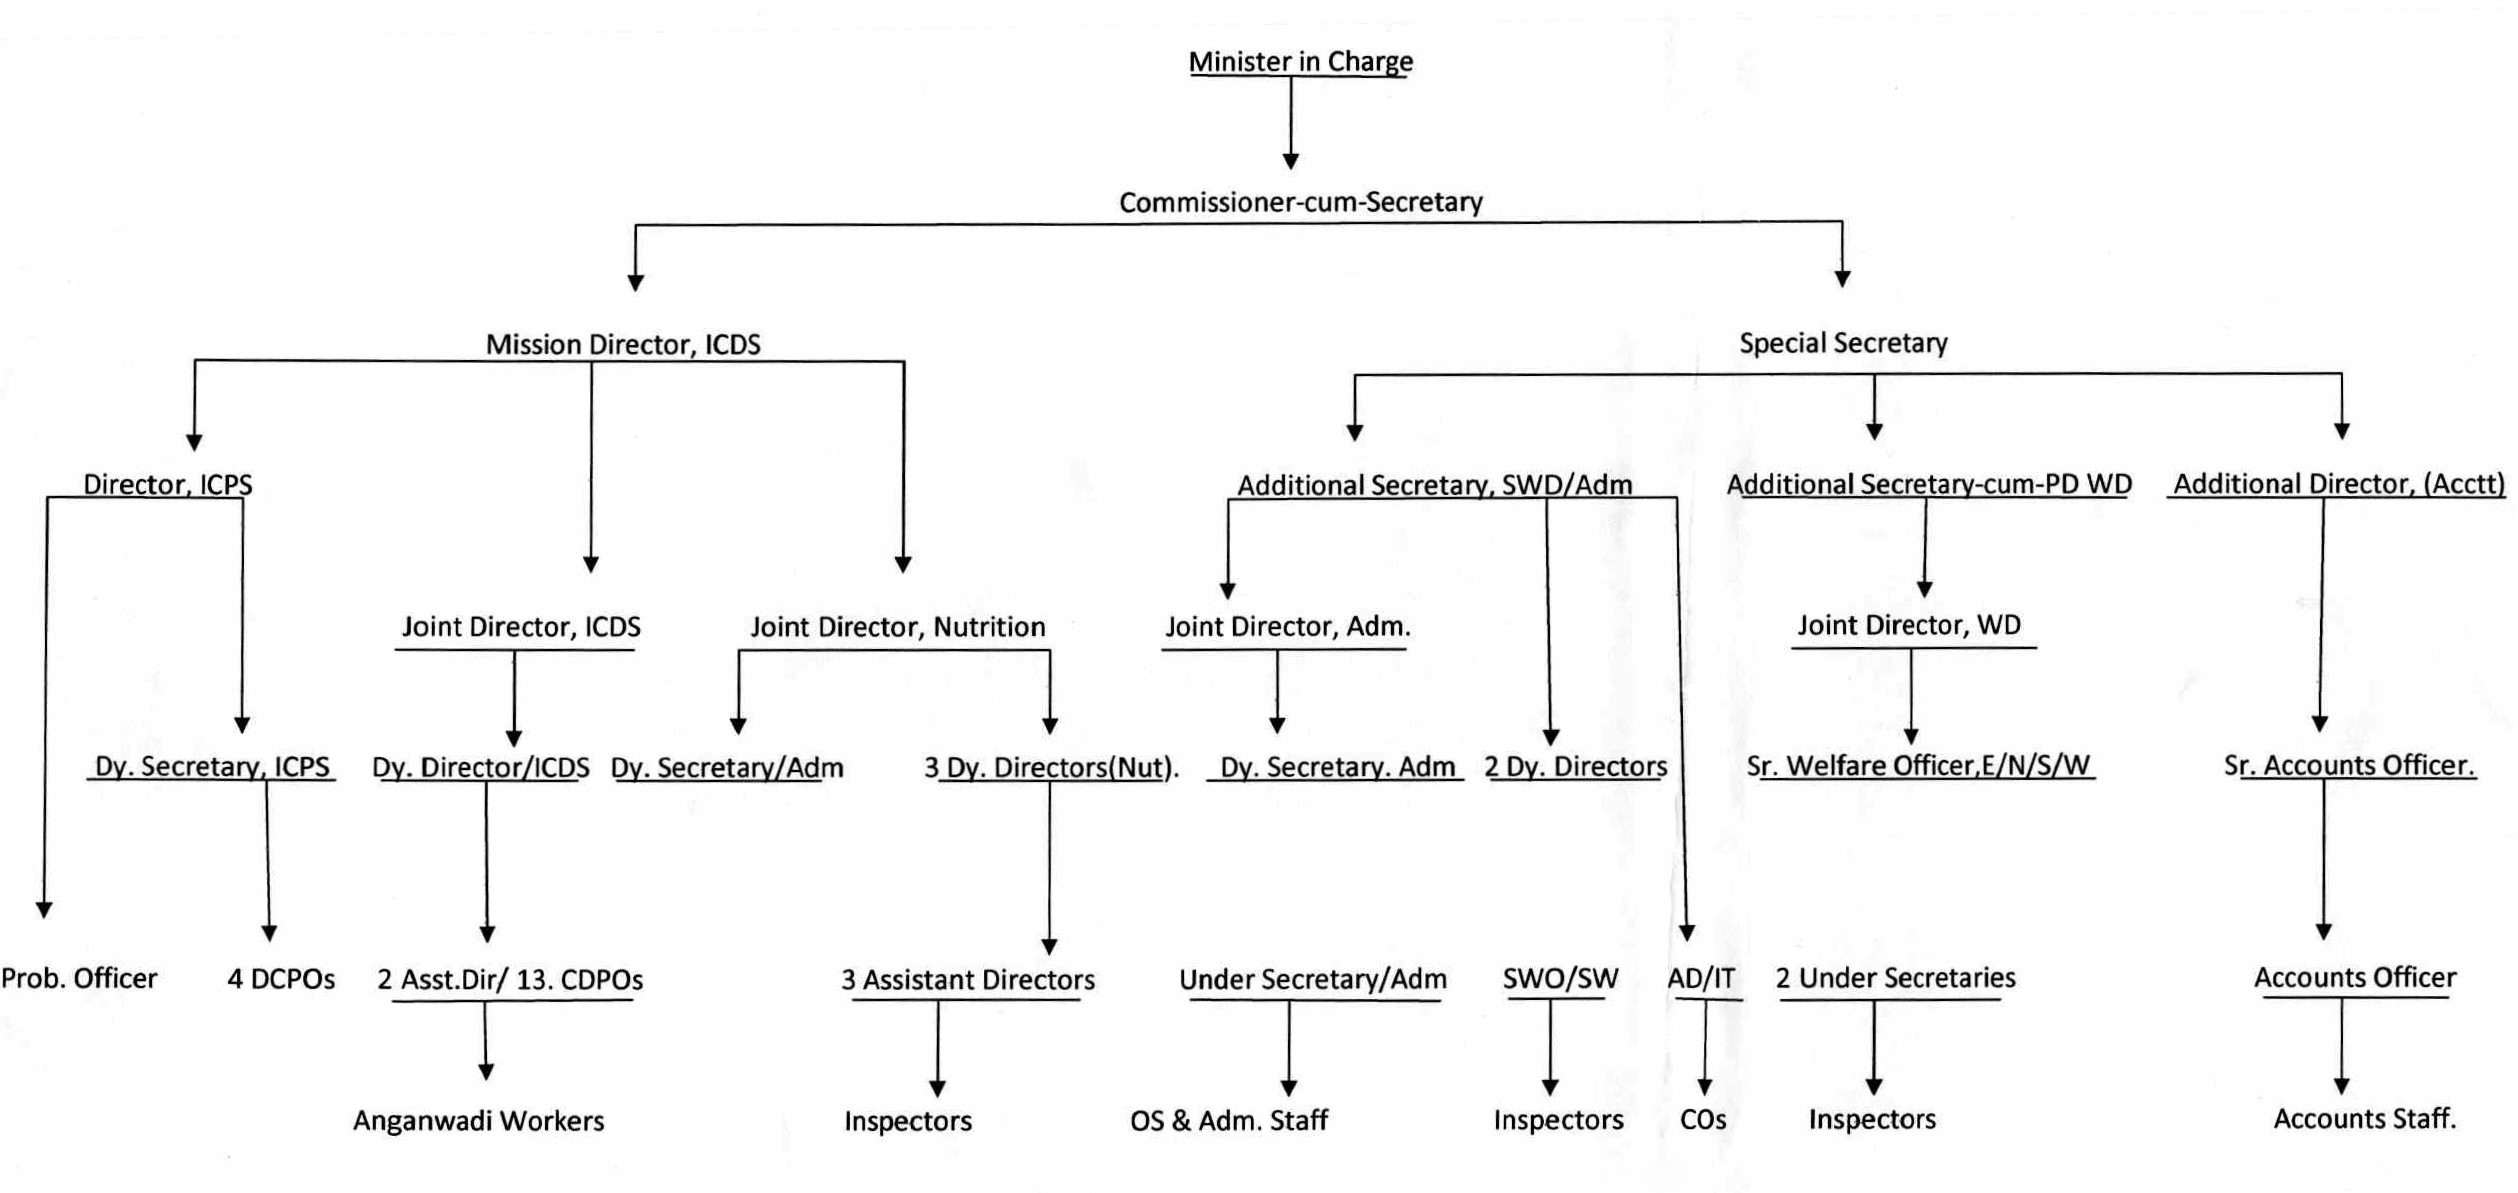 Image-Organizational Chart of the Department